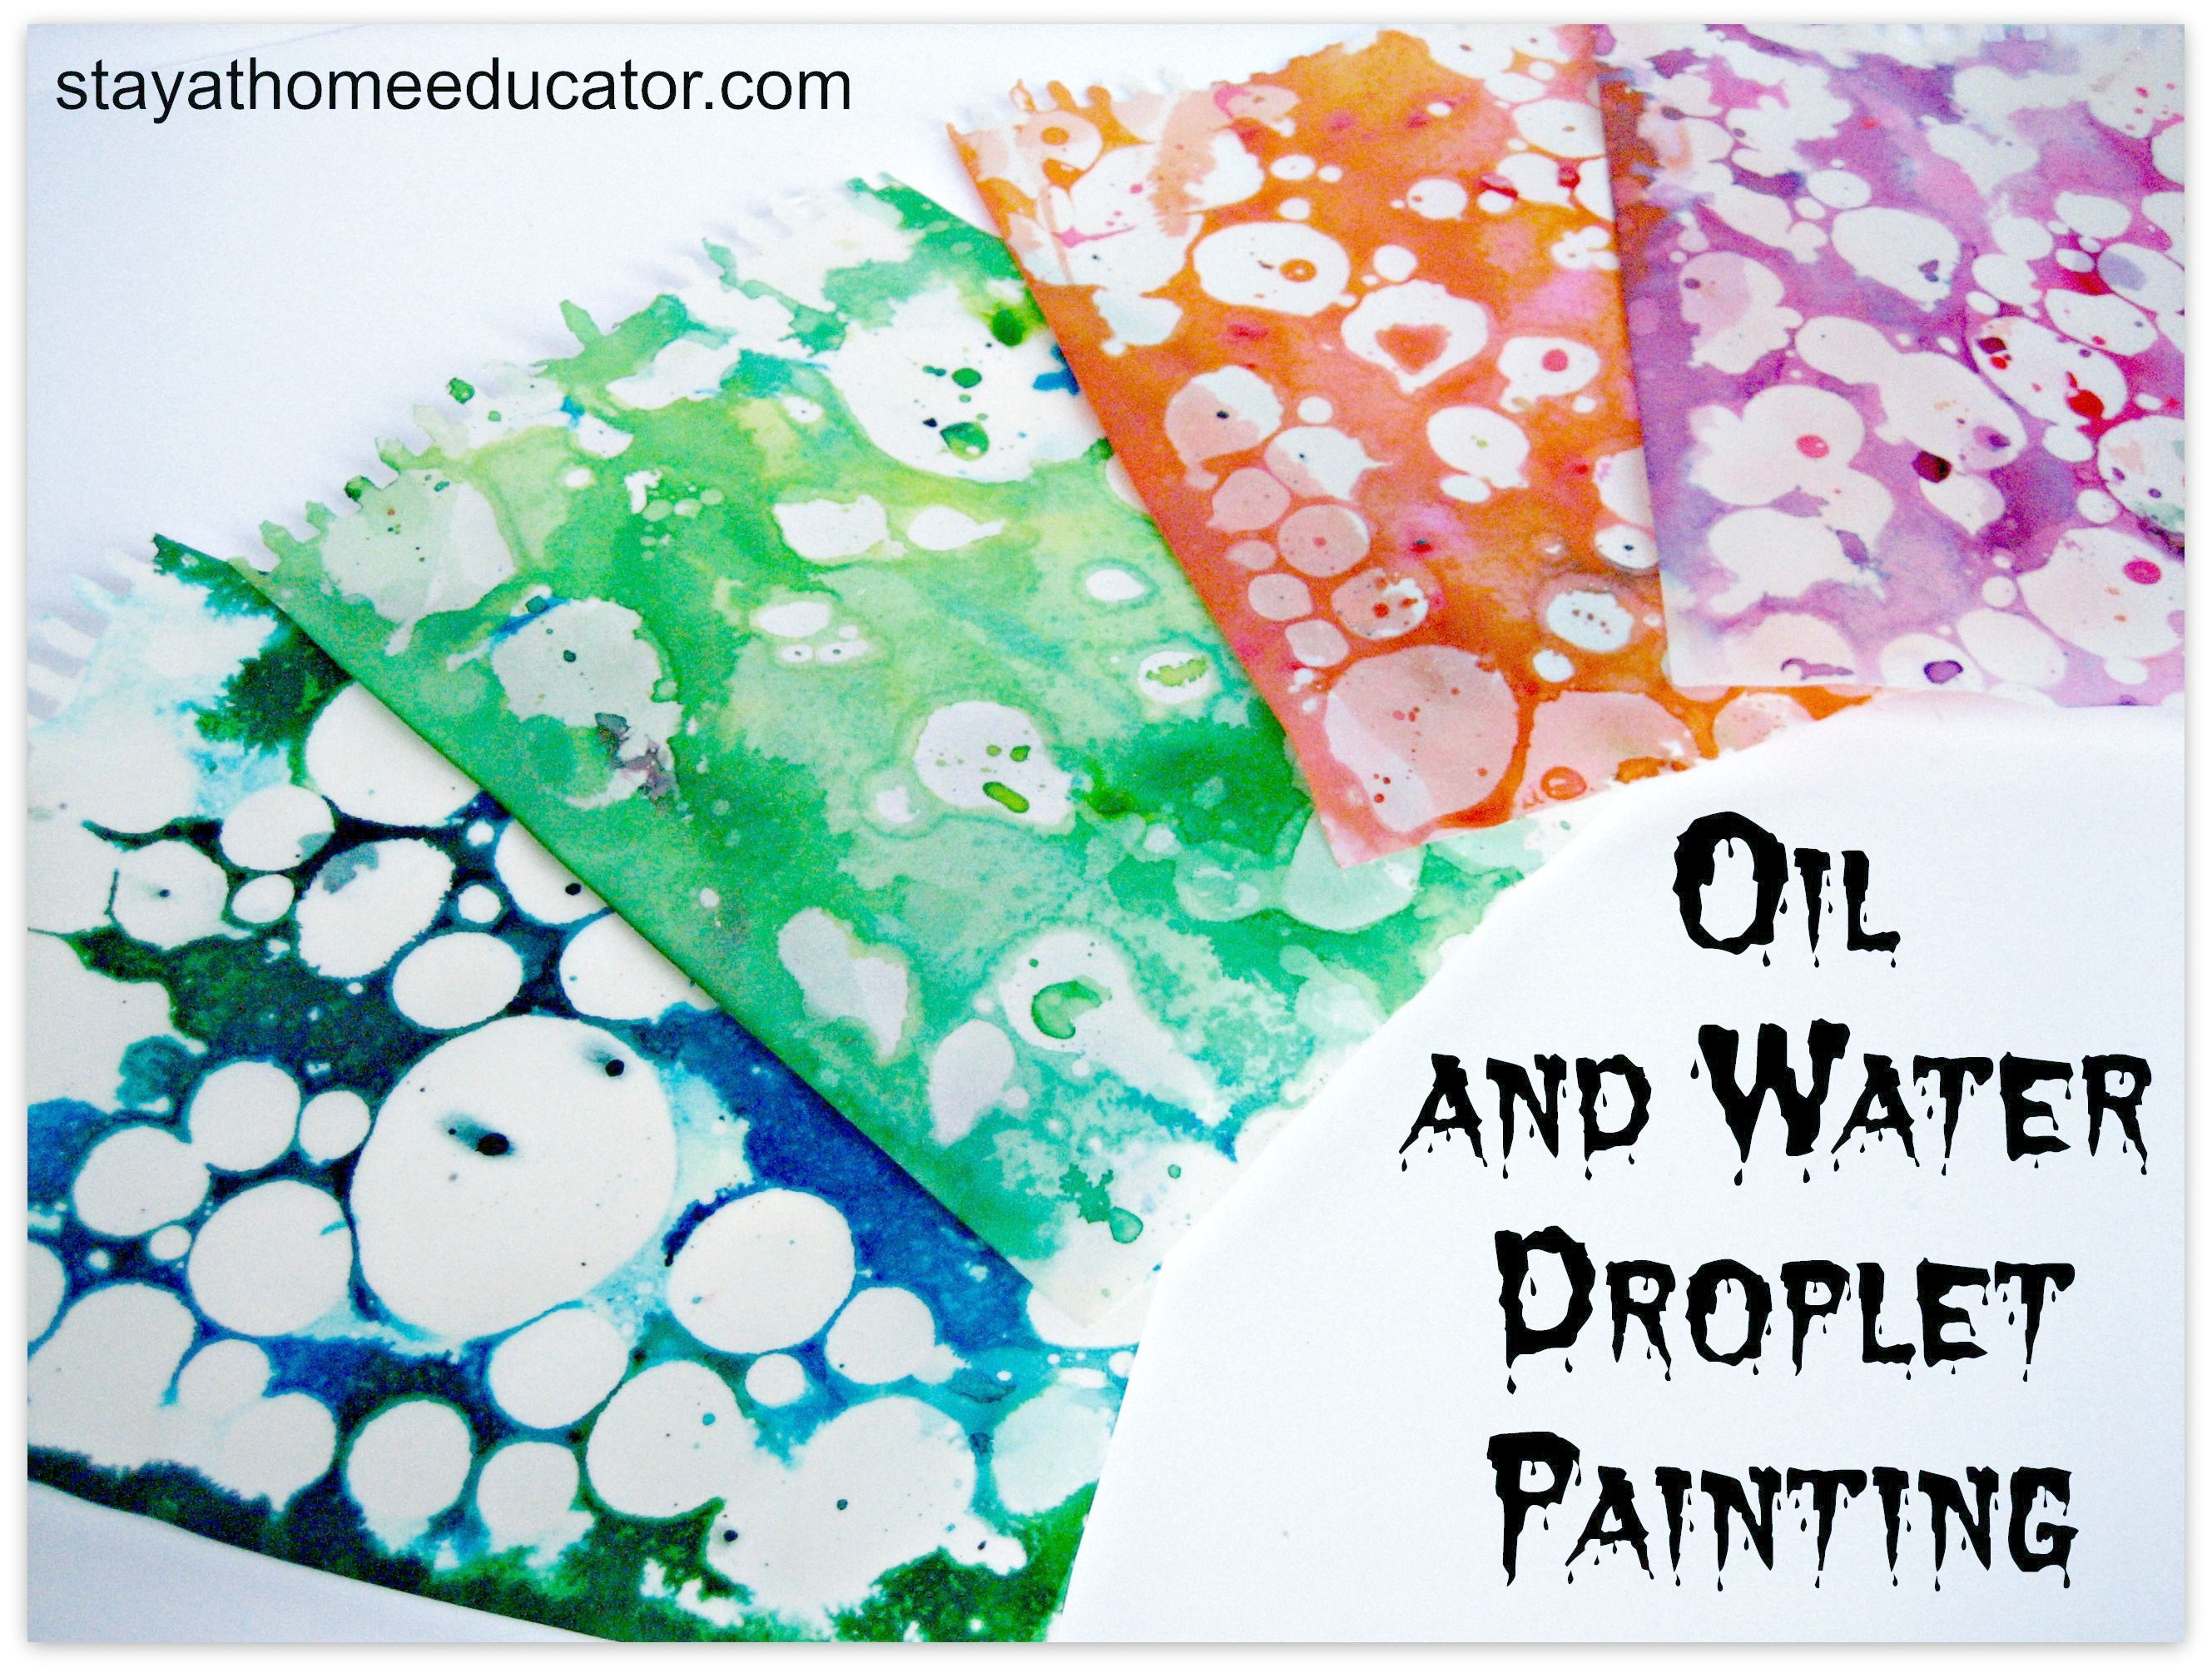 Water and ice activities summer camp at home with 12 weeks of easy - Oil And Water Droplet Painting Is A Fun Fine Motor Activity In Addition To Process Art